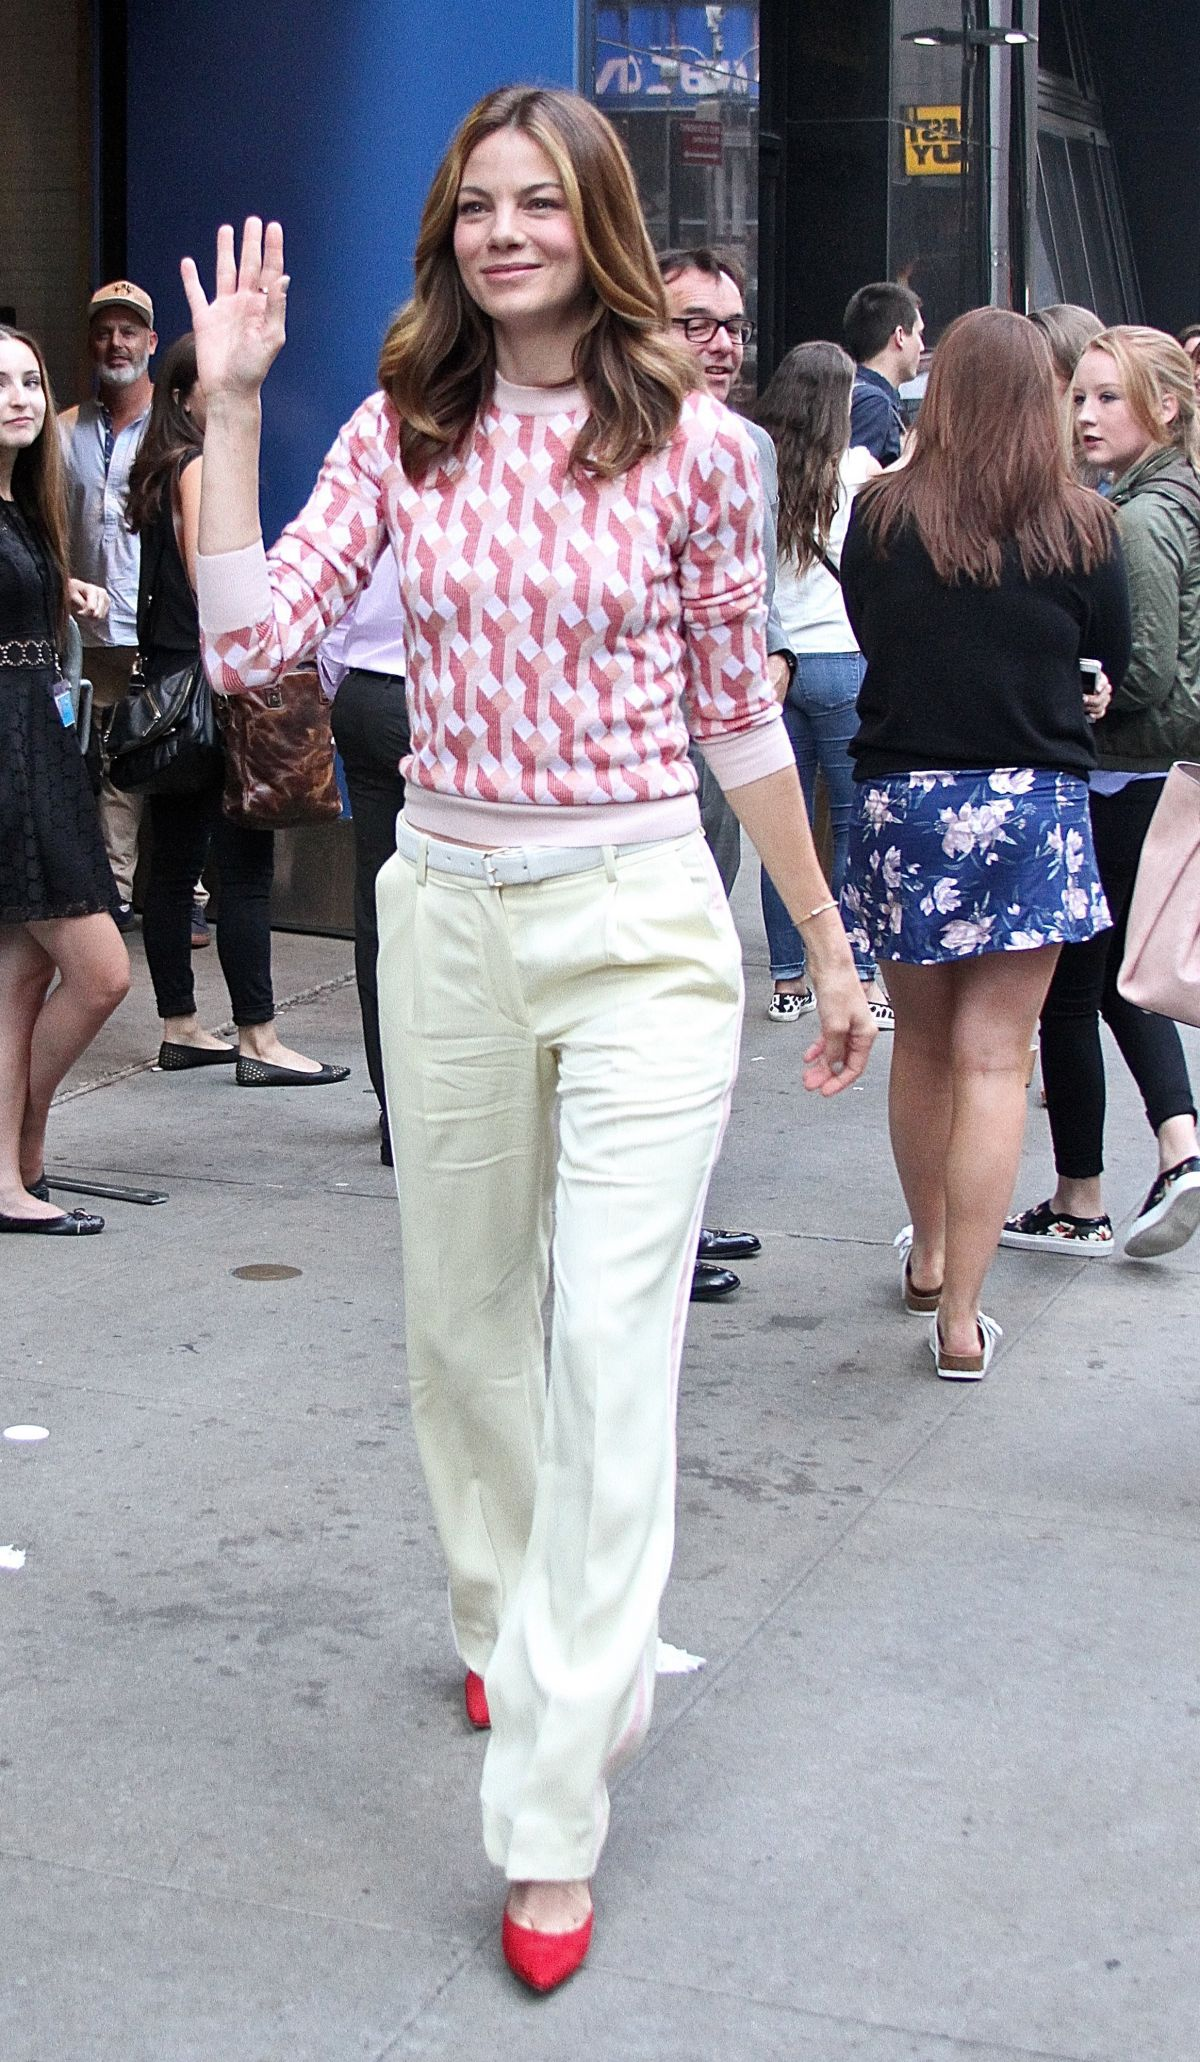 MICHELLE MONAGHAN at Good Morning America in New York 07/20/2015